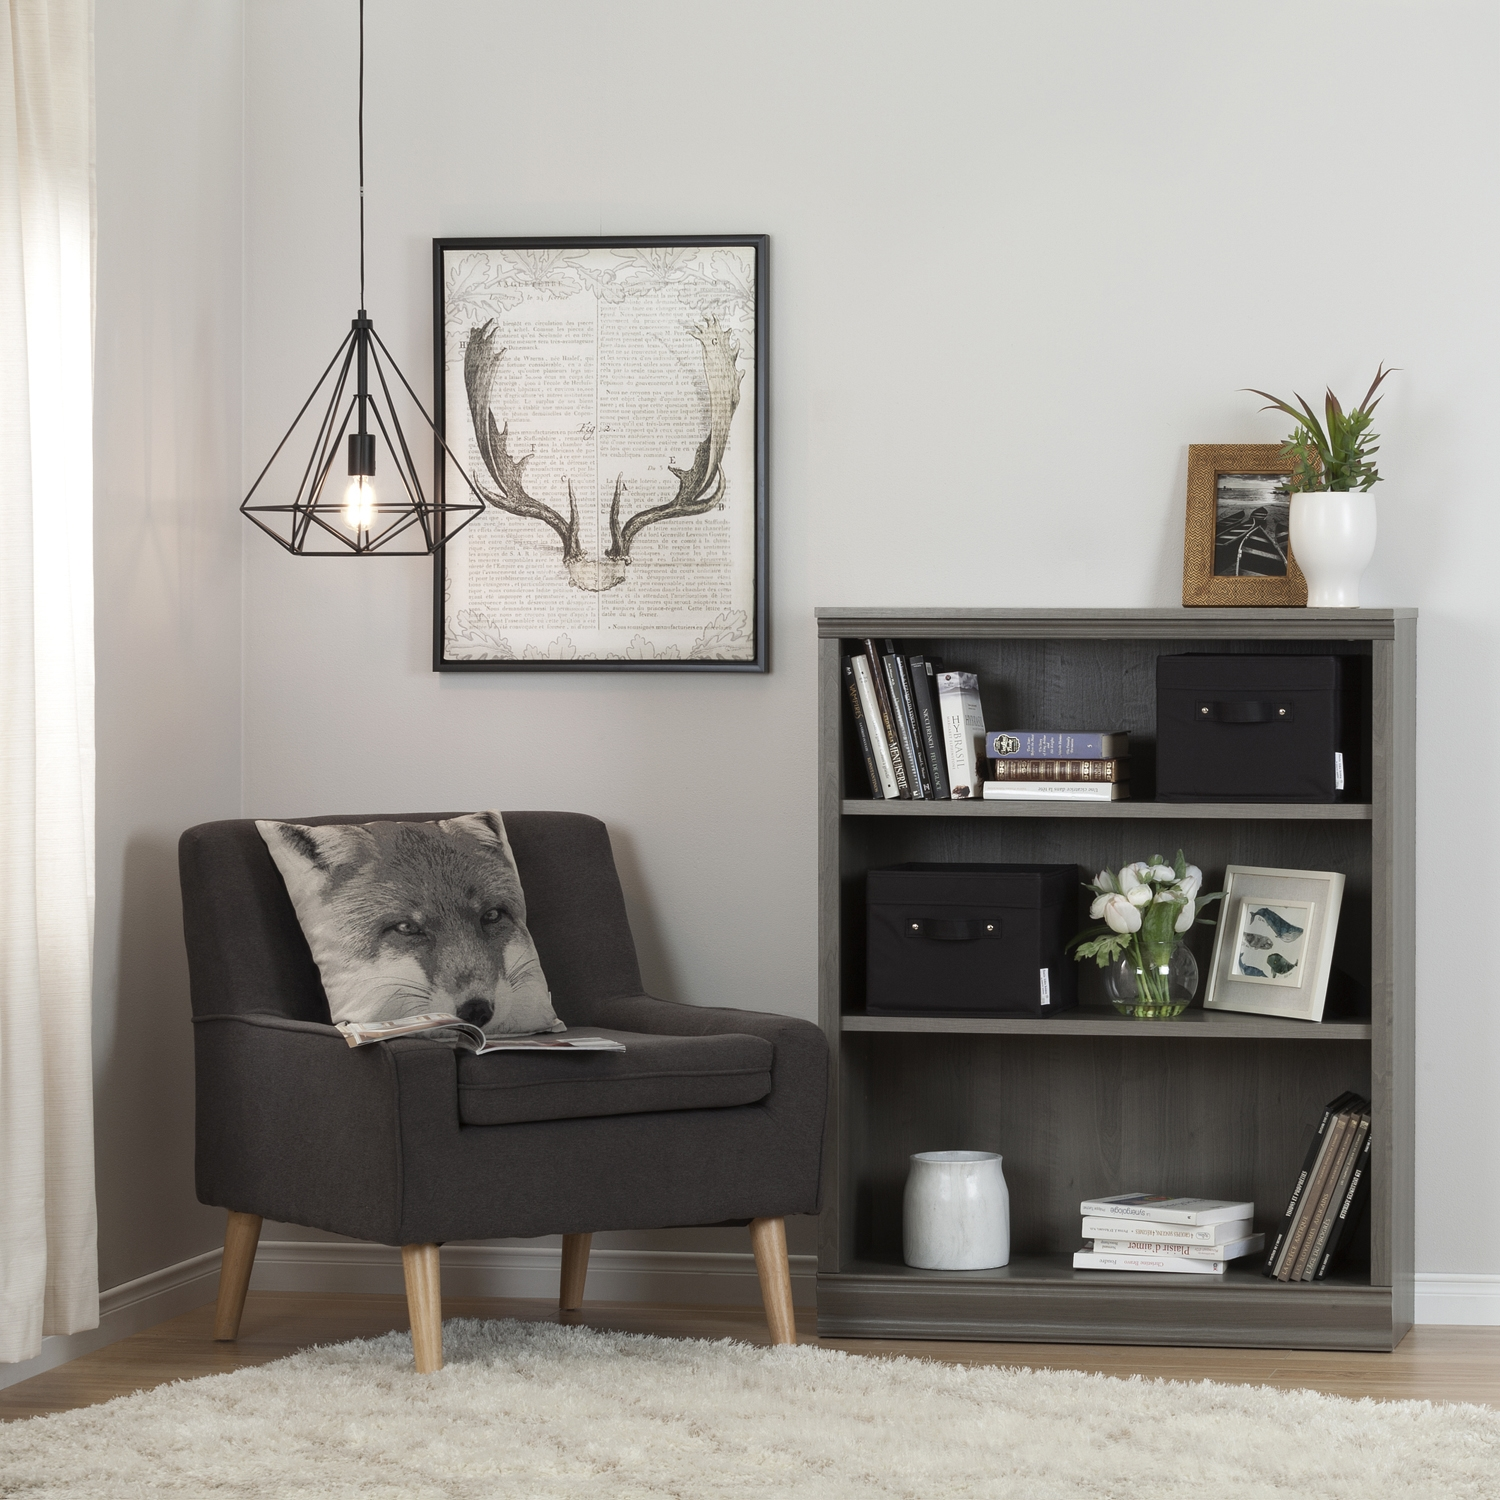 Morgan 3 Shelves Bookcase - 2 Canvas Storage Baskets, Gray Maple - SS-100112